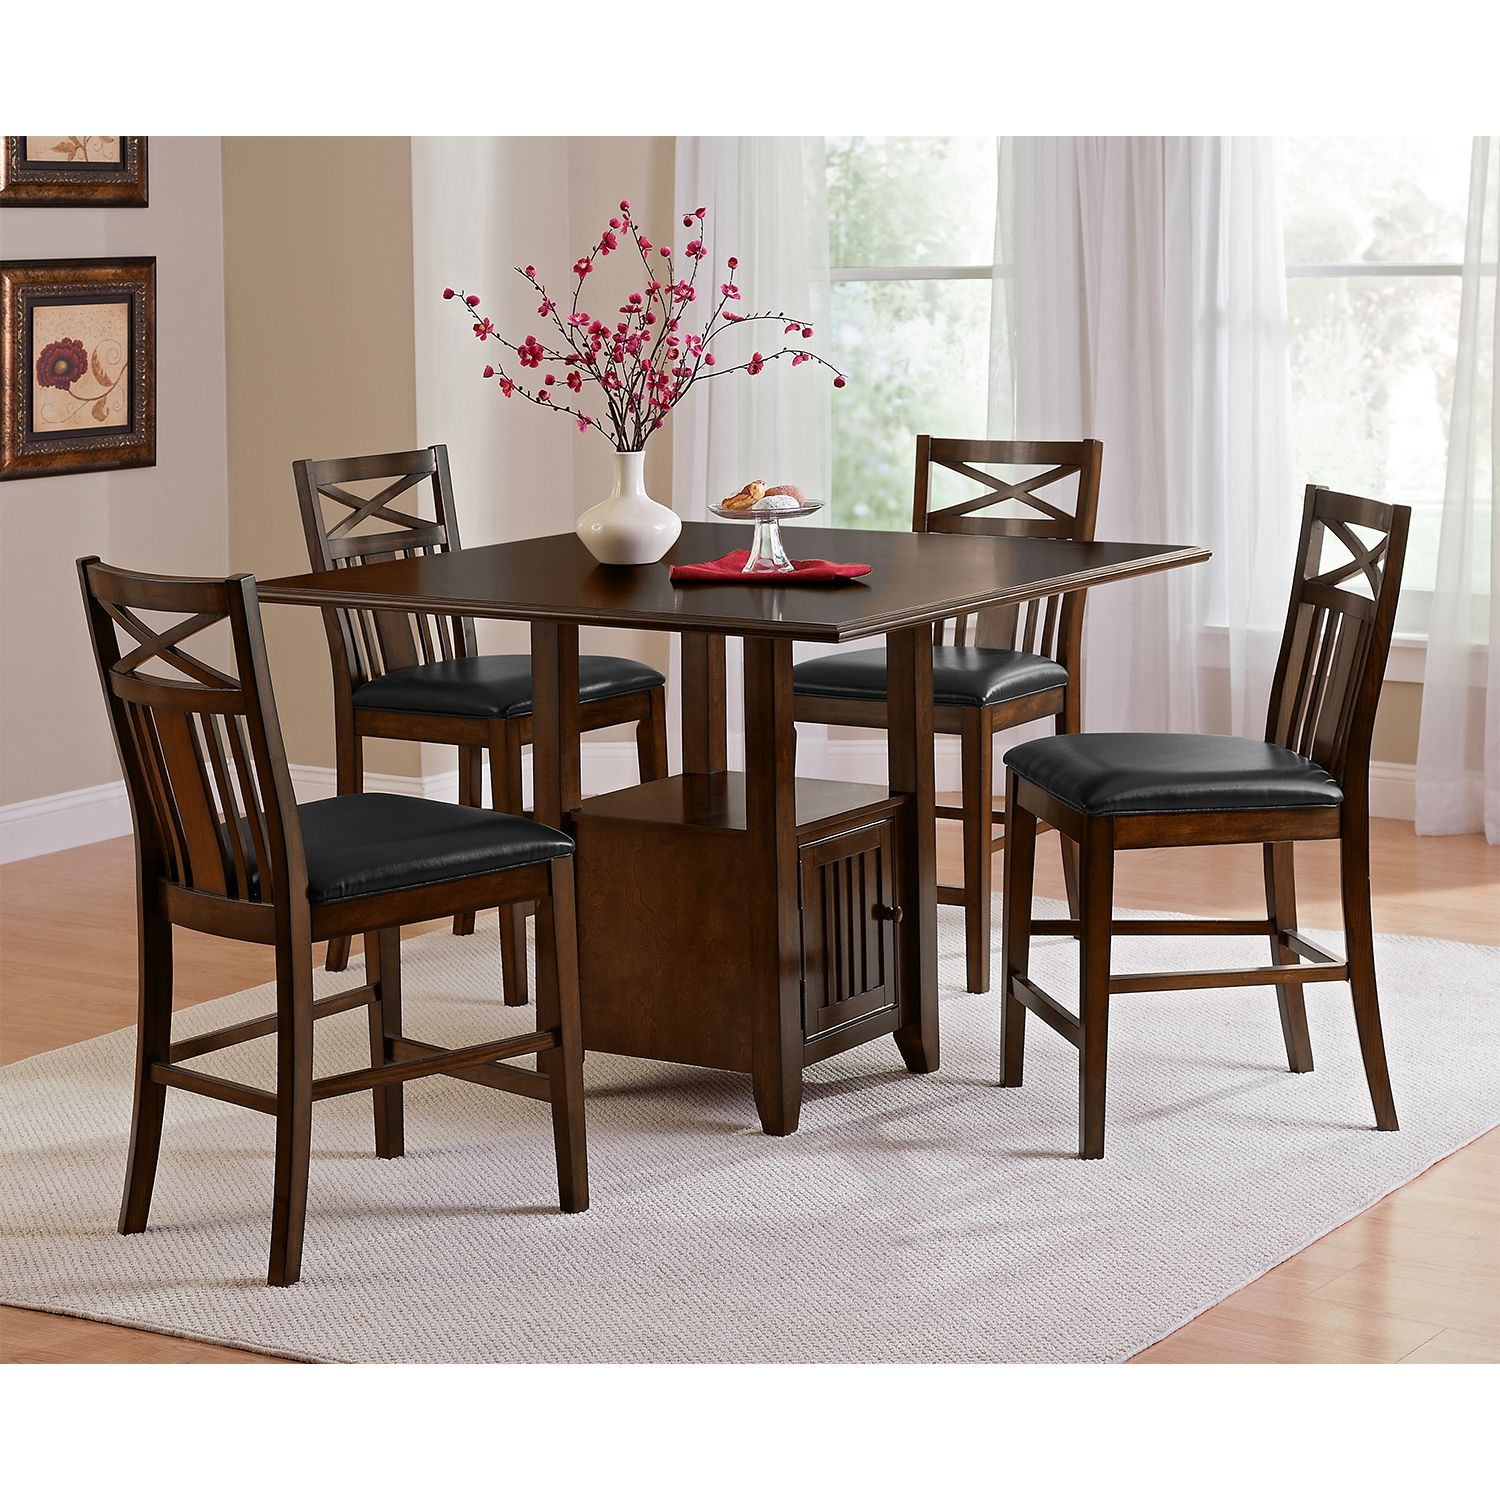 For The Kitchenette American Signature Furniture Natchez Trail Dining Room Counter Height Table Dining Room Furniture Furniture Dining